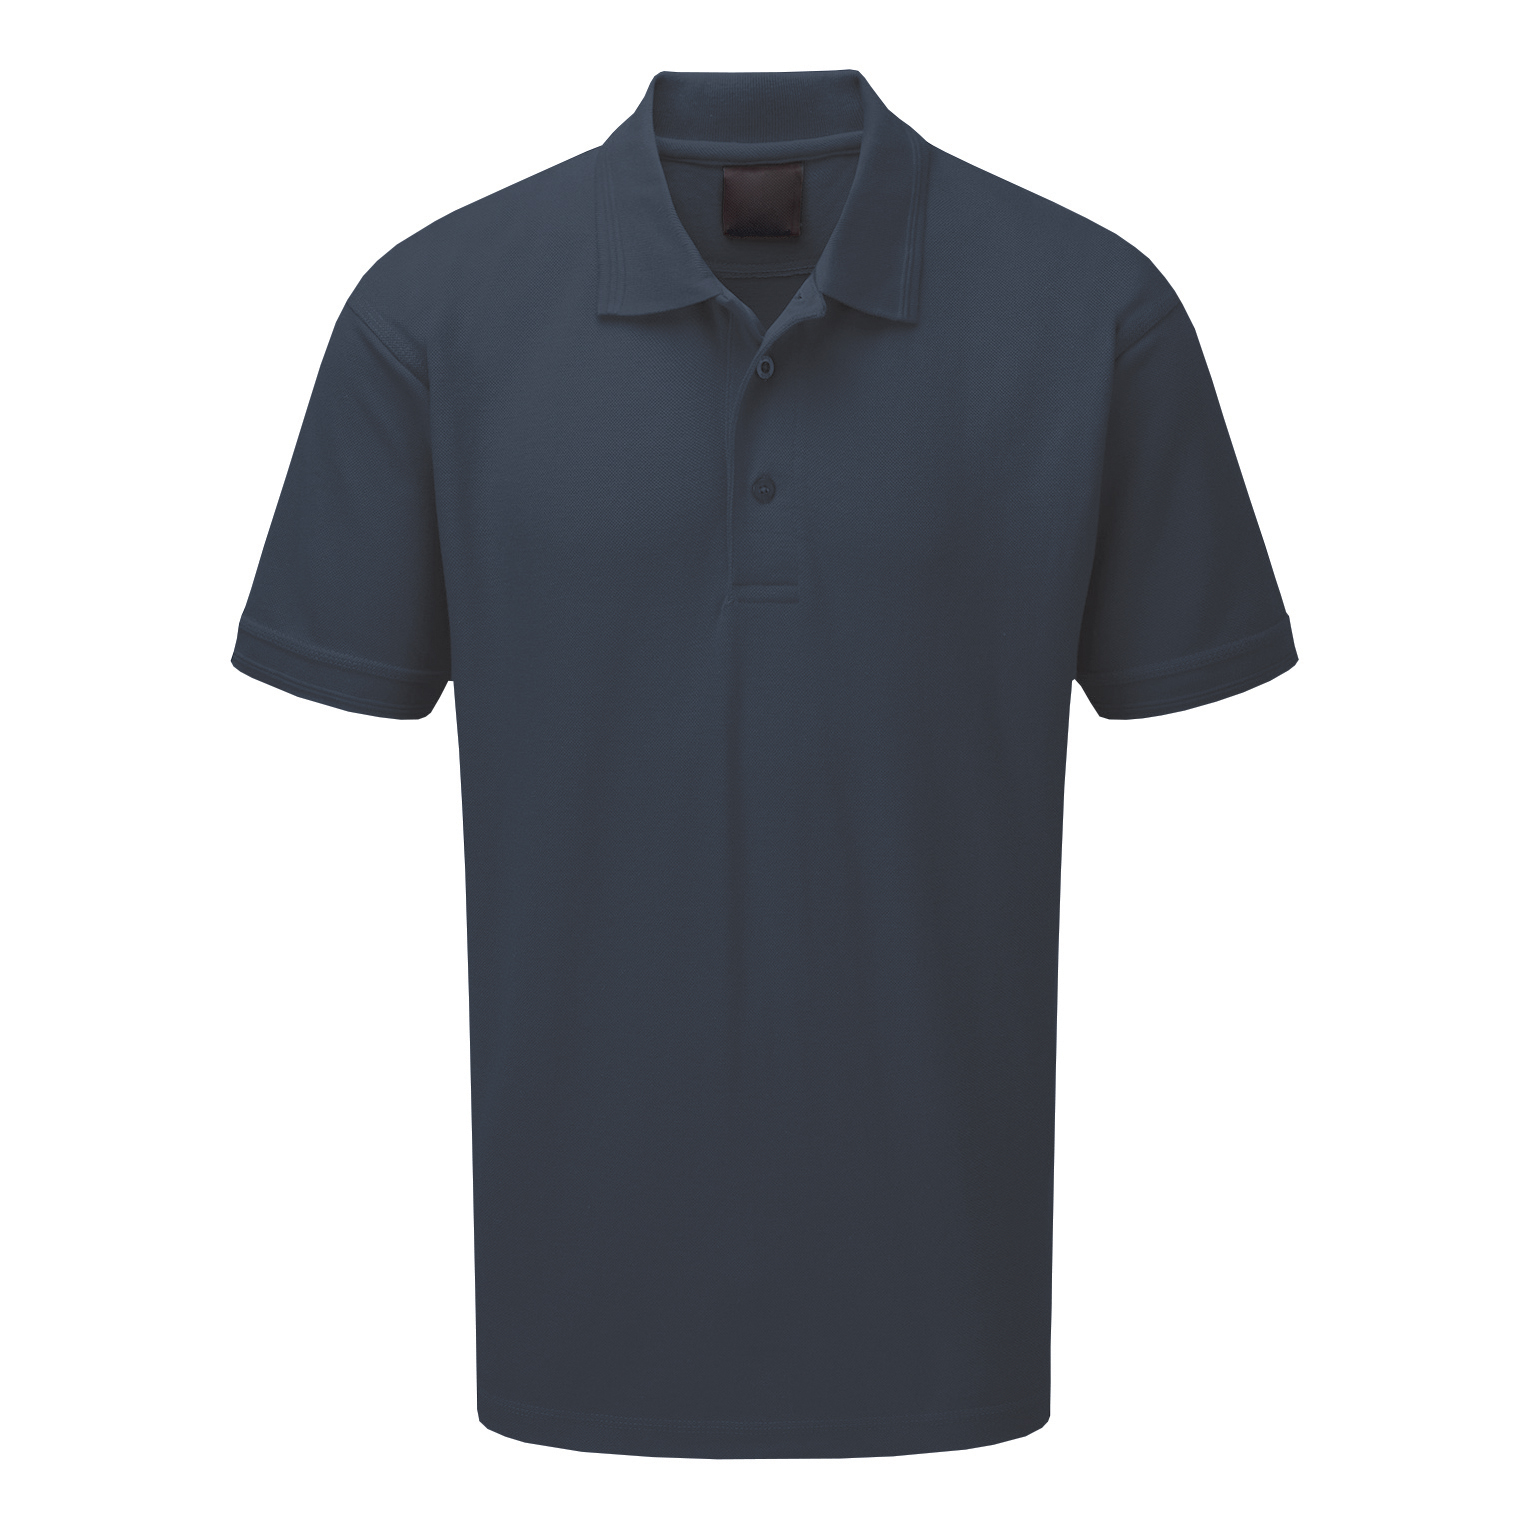 Premium Polo Triple Stitched 220gsm Large Graphite